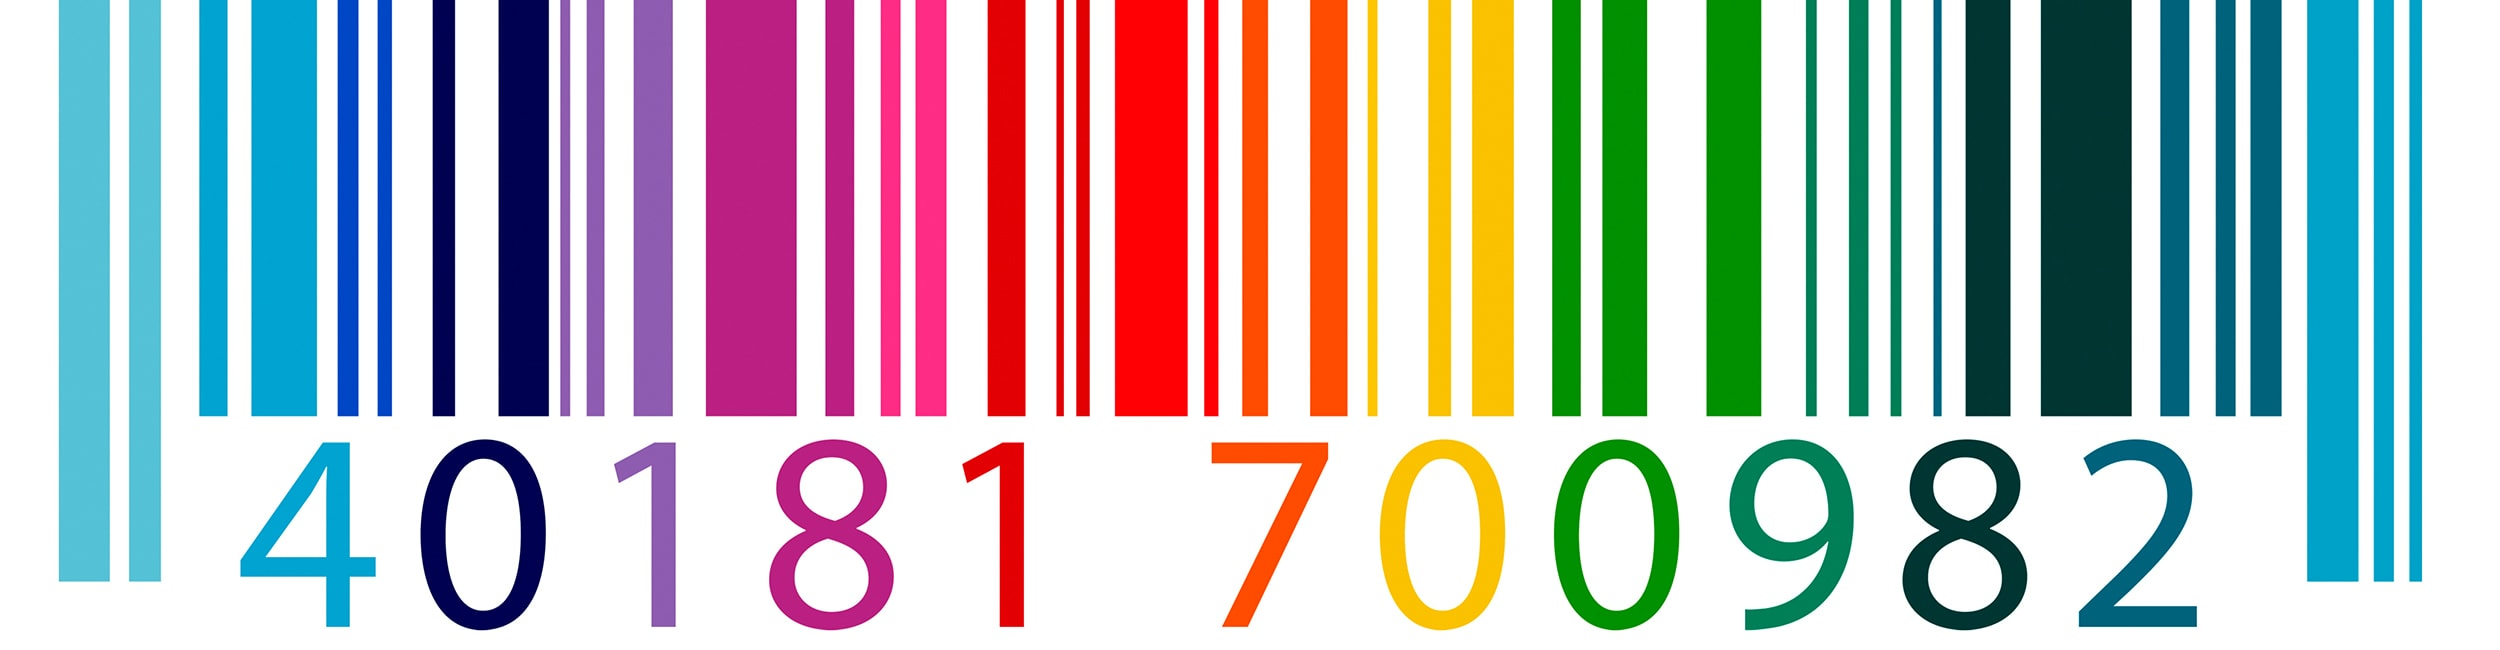 Colorful Barcode Label